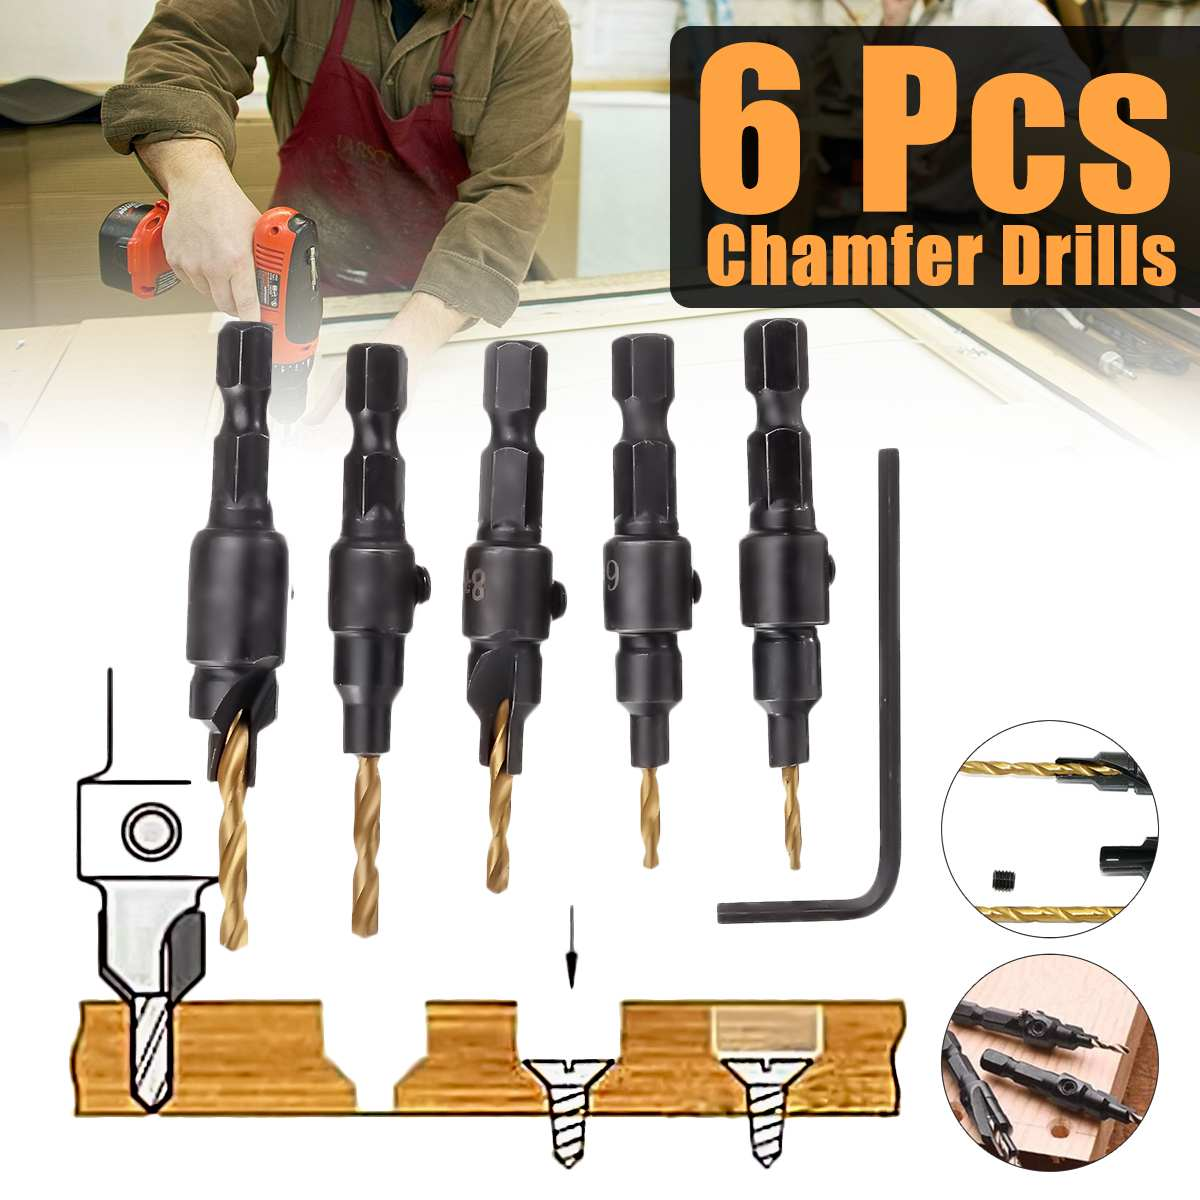 5 Pcs HSS Chamfer Drill Bit Set Countersink Drilling Pilot Hole Woodworking Tool Chamfer Counter Sink Drill Bit With Wrench